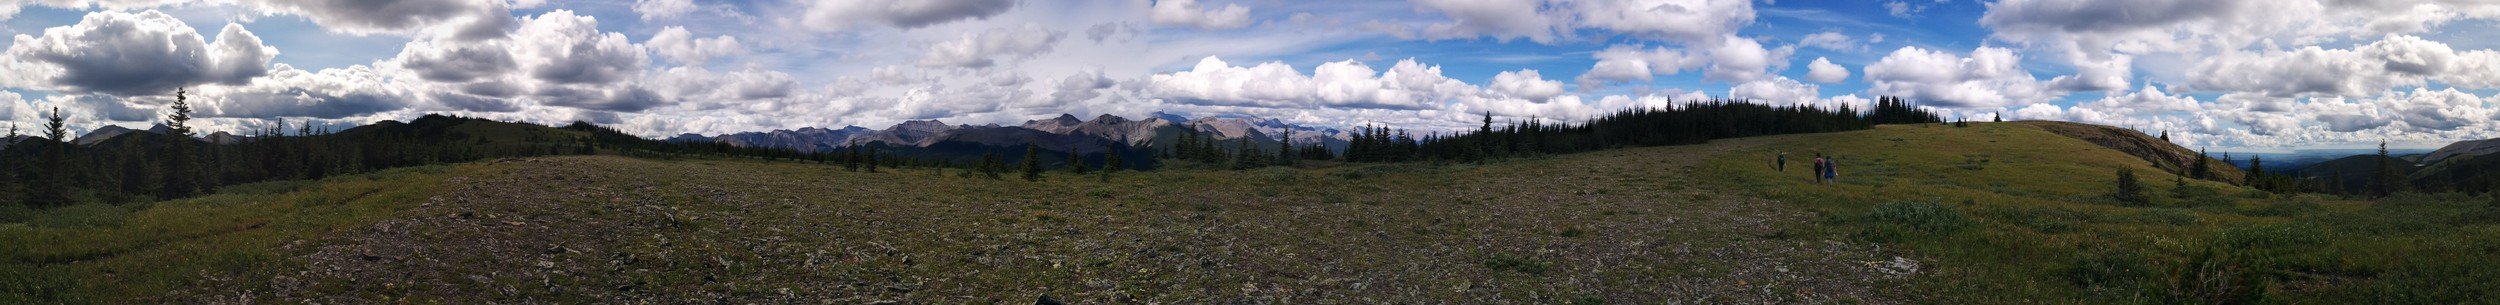 Field research site - Kananaksis, AB